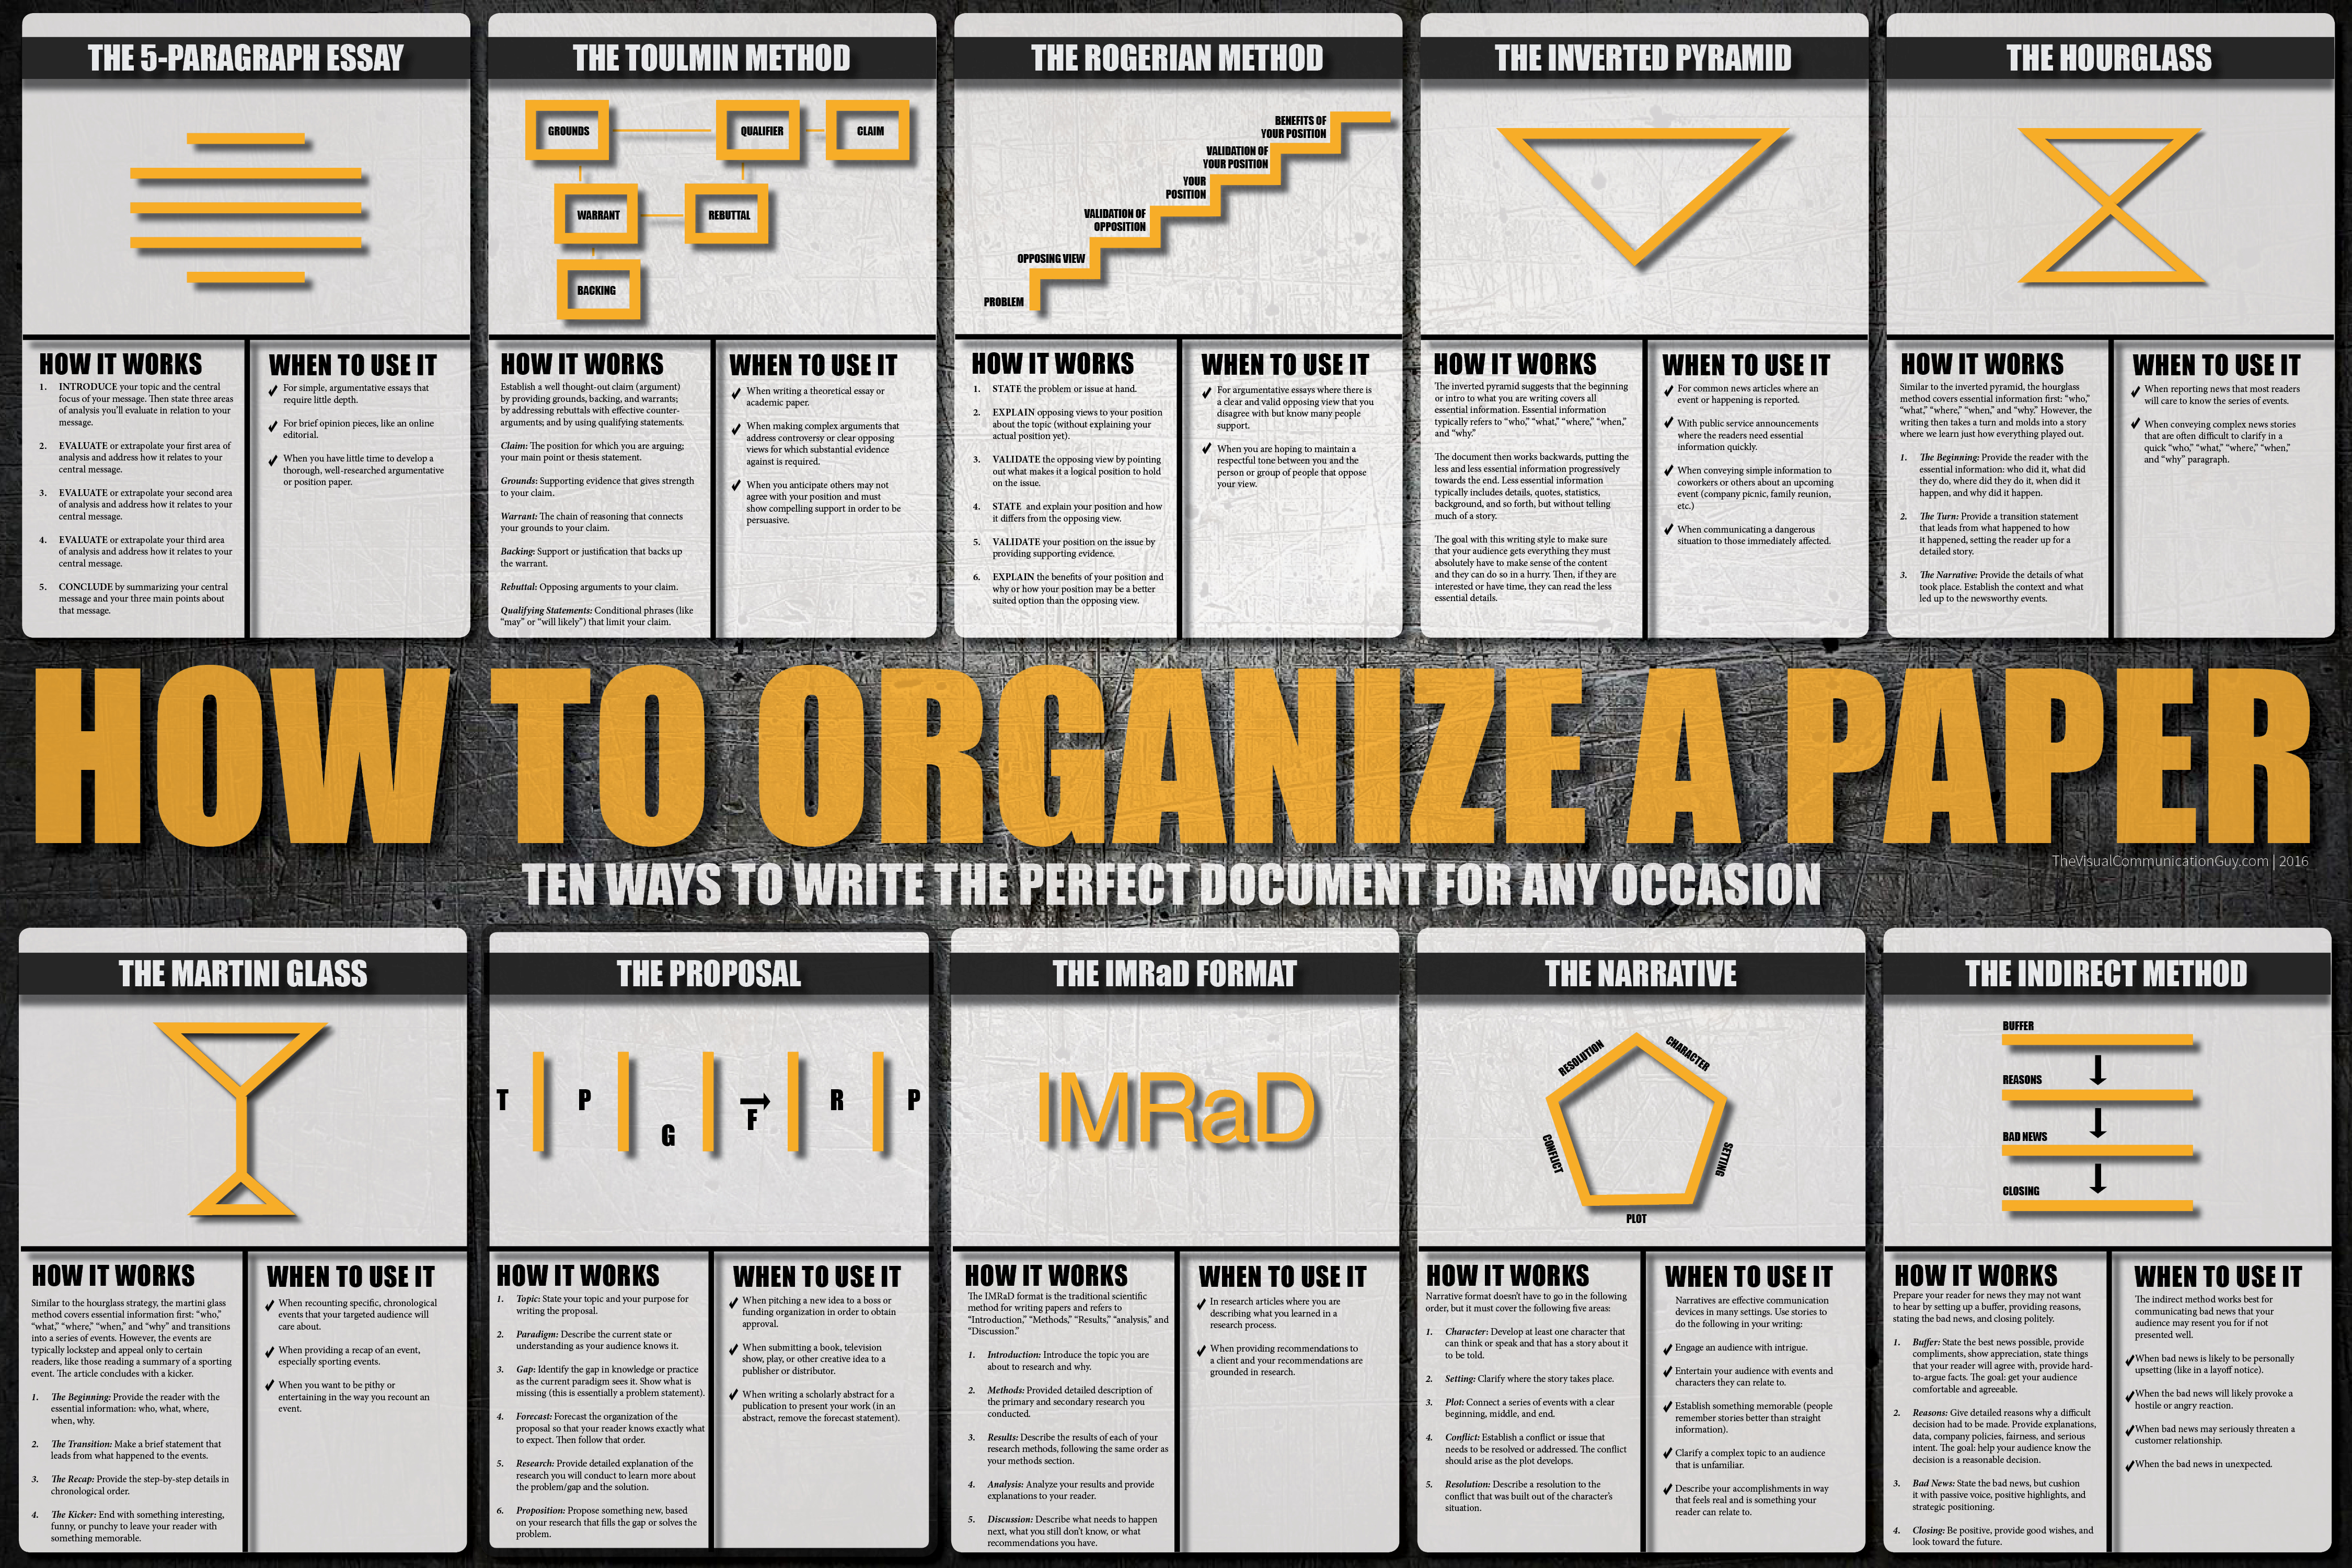 how to organize a paper  ten ways to write the perfect